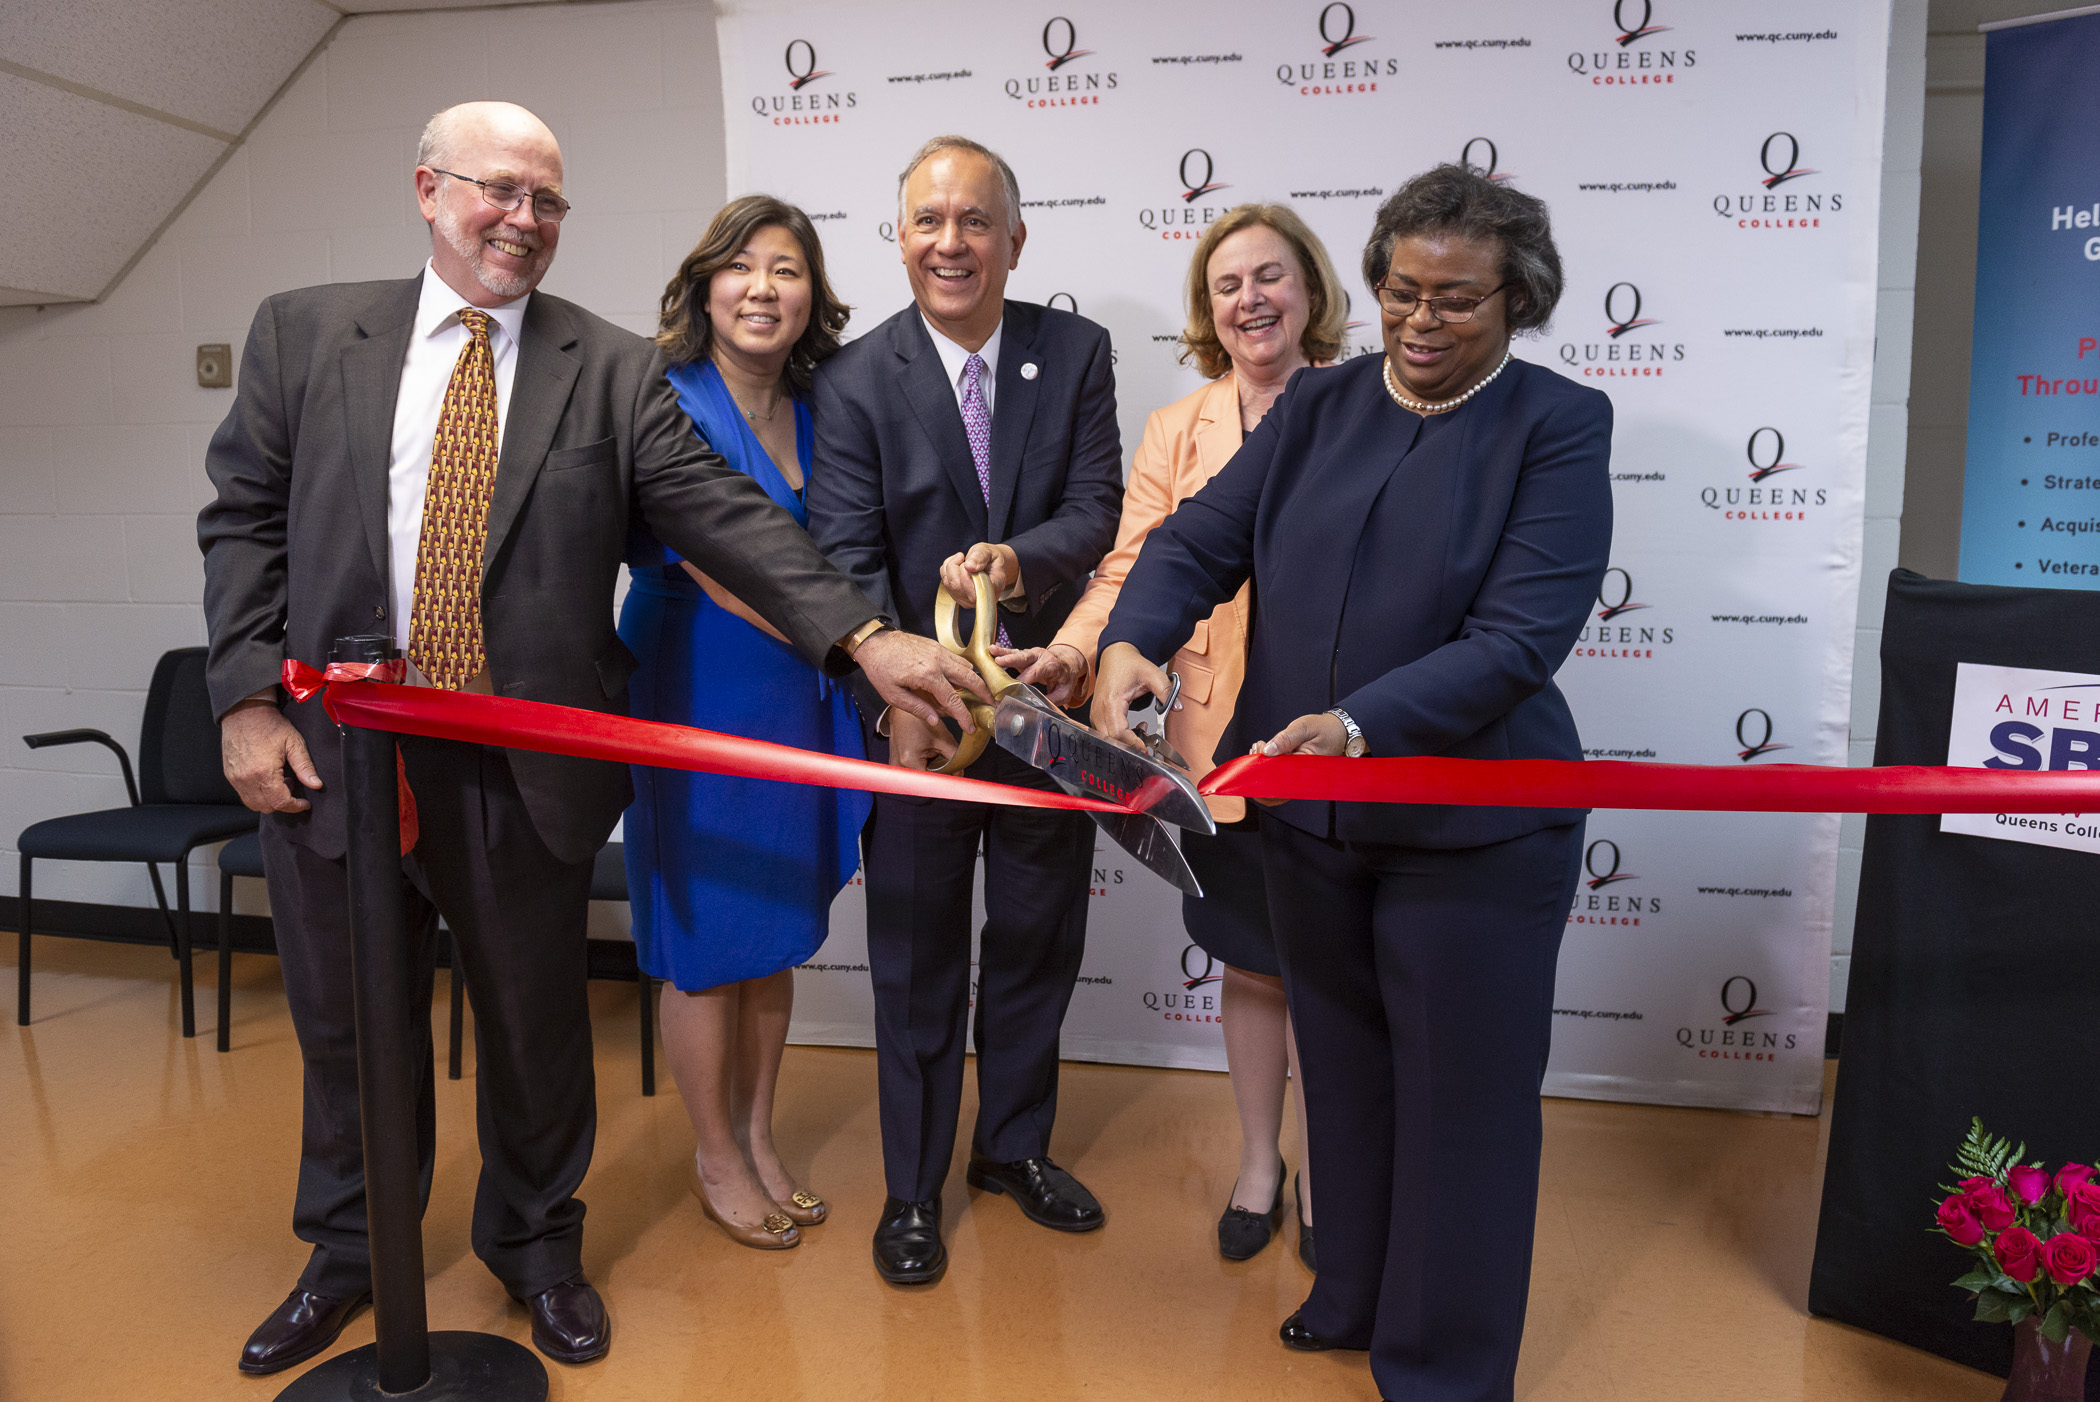 From left to right: Queens College Dean of Arts and Humanities Michael Wolfe, The Honorable Congresswoman Grace Meng (D-Queens), CUNY Chancellor and Queens College President Félix V. Matos Rodríguez; LaGuardia Community College President Gail O. Mellow, and Director of the LaGuardia Community College SBDC Rosa Figueroa celebrate SBDC's opening at Queens College. Photo by Andy Poon, courtesy of Queens College.